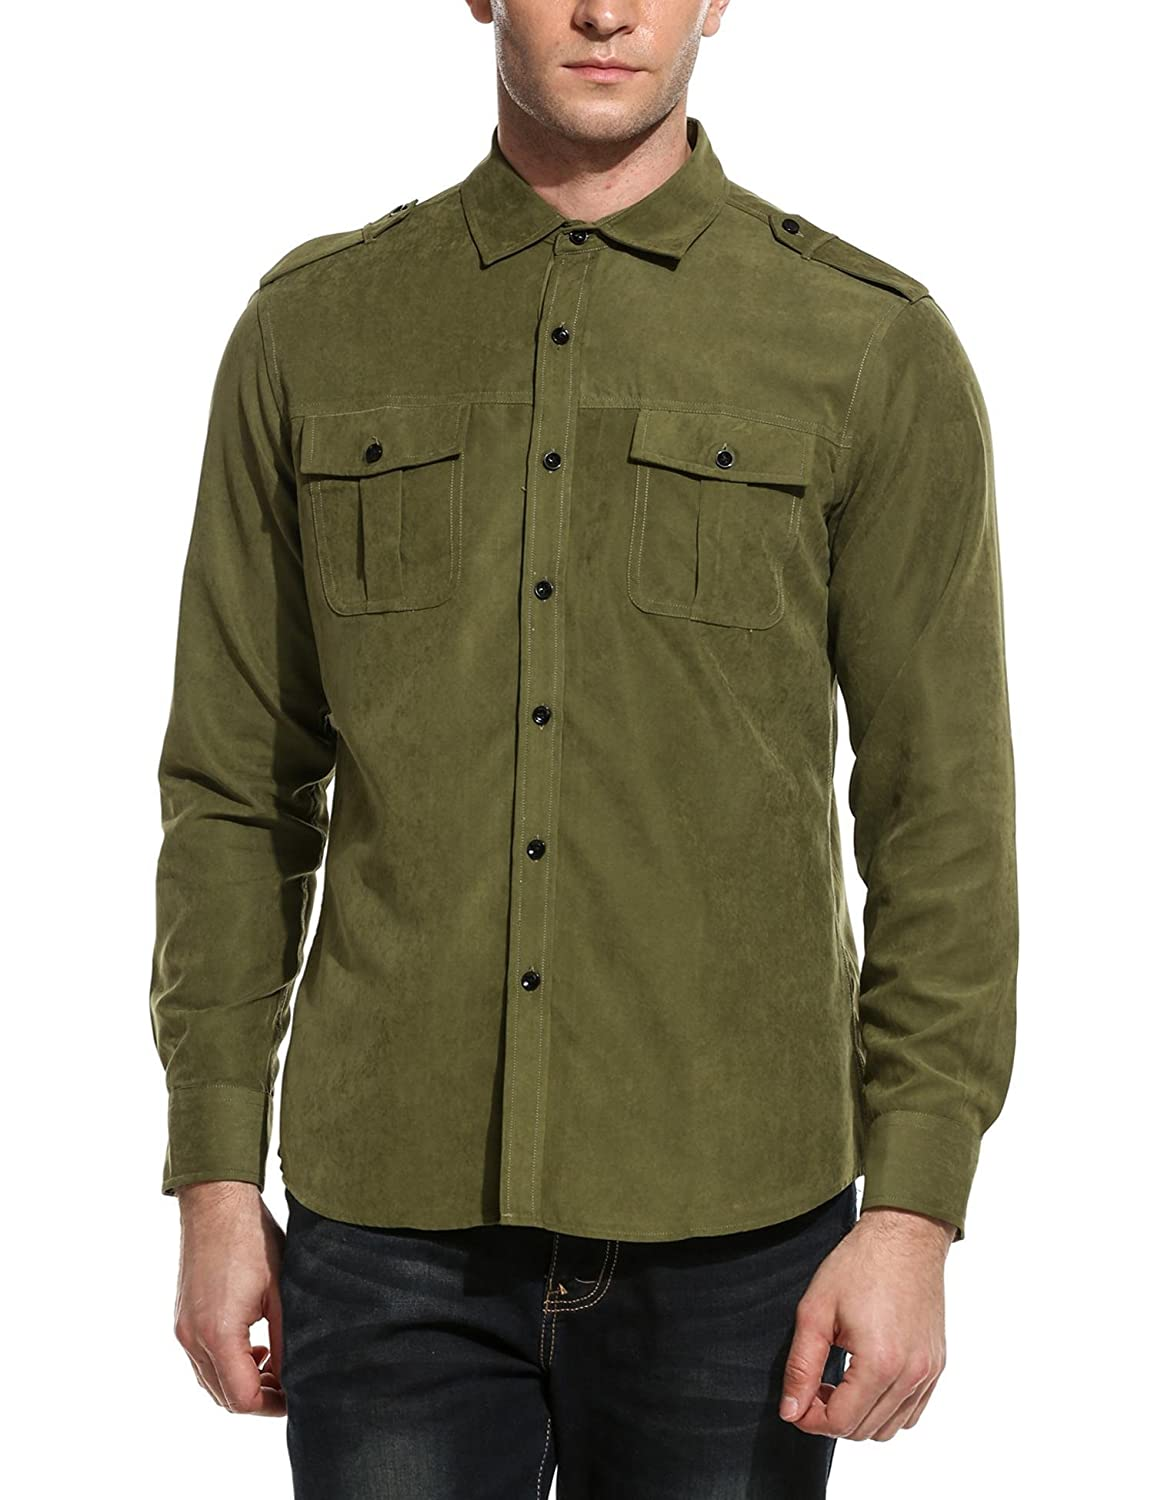 Coofandy Men's Casual Solid Long Sleeve Button Down Collar Shirt